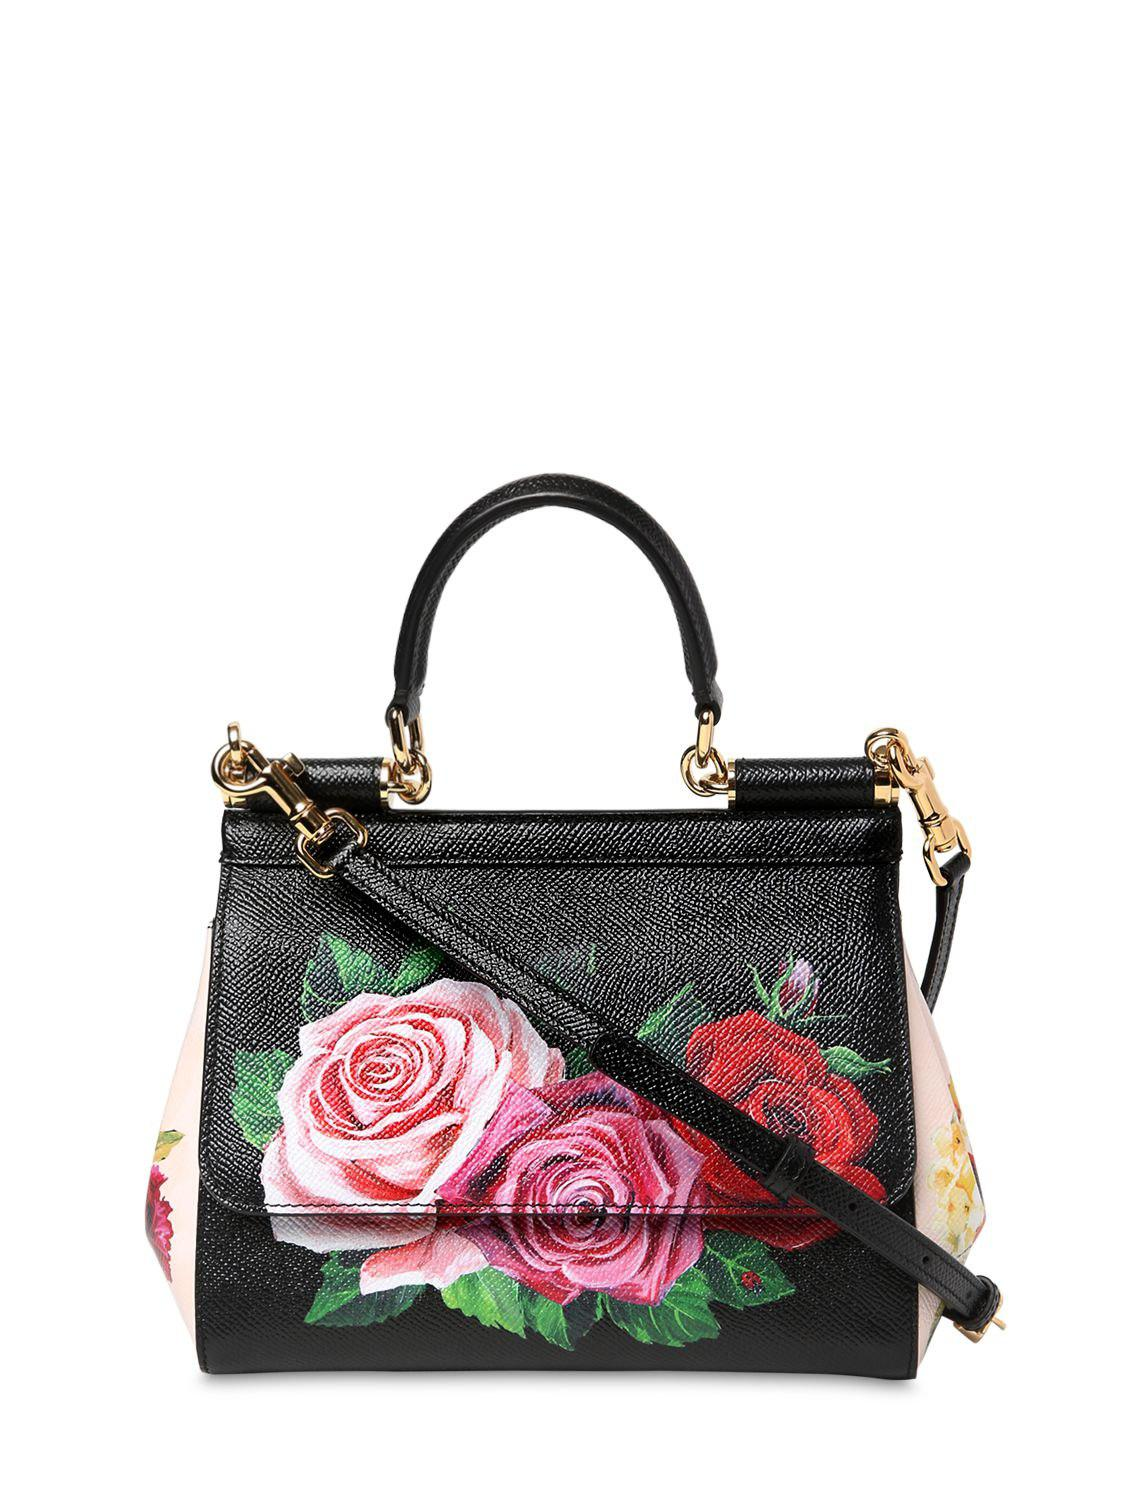 abac72b7c1 Lyst - Dolce   Gabbana Small Sicily Floral Printed Leather Bag in Black